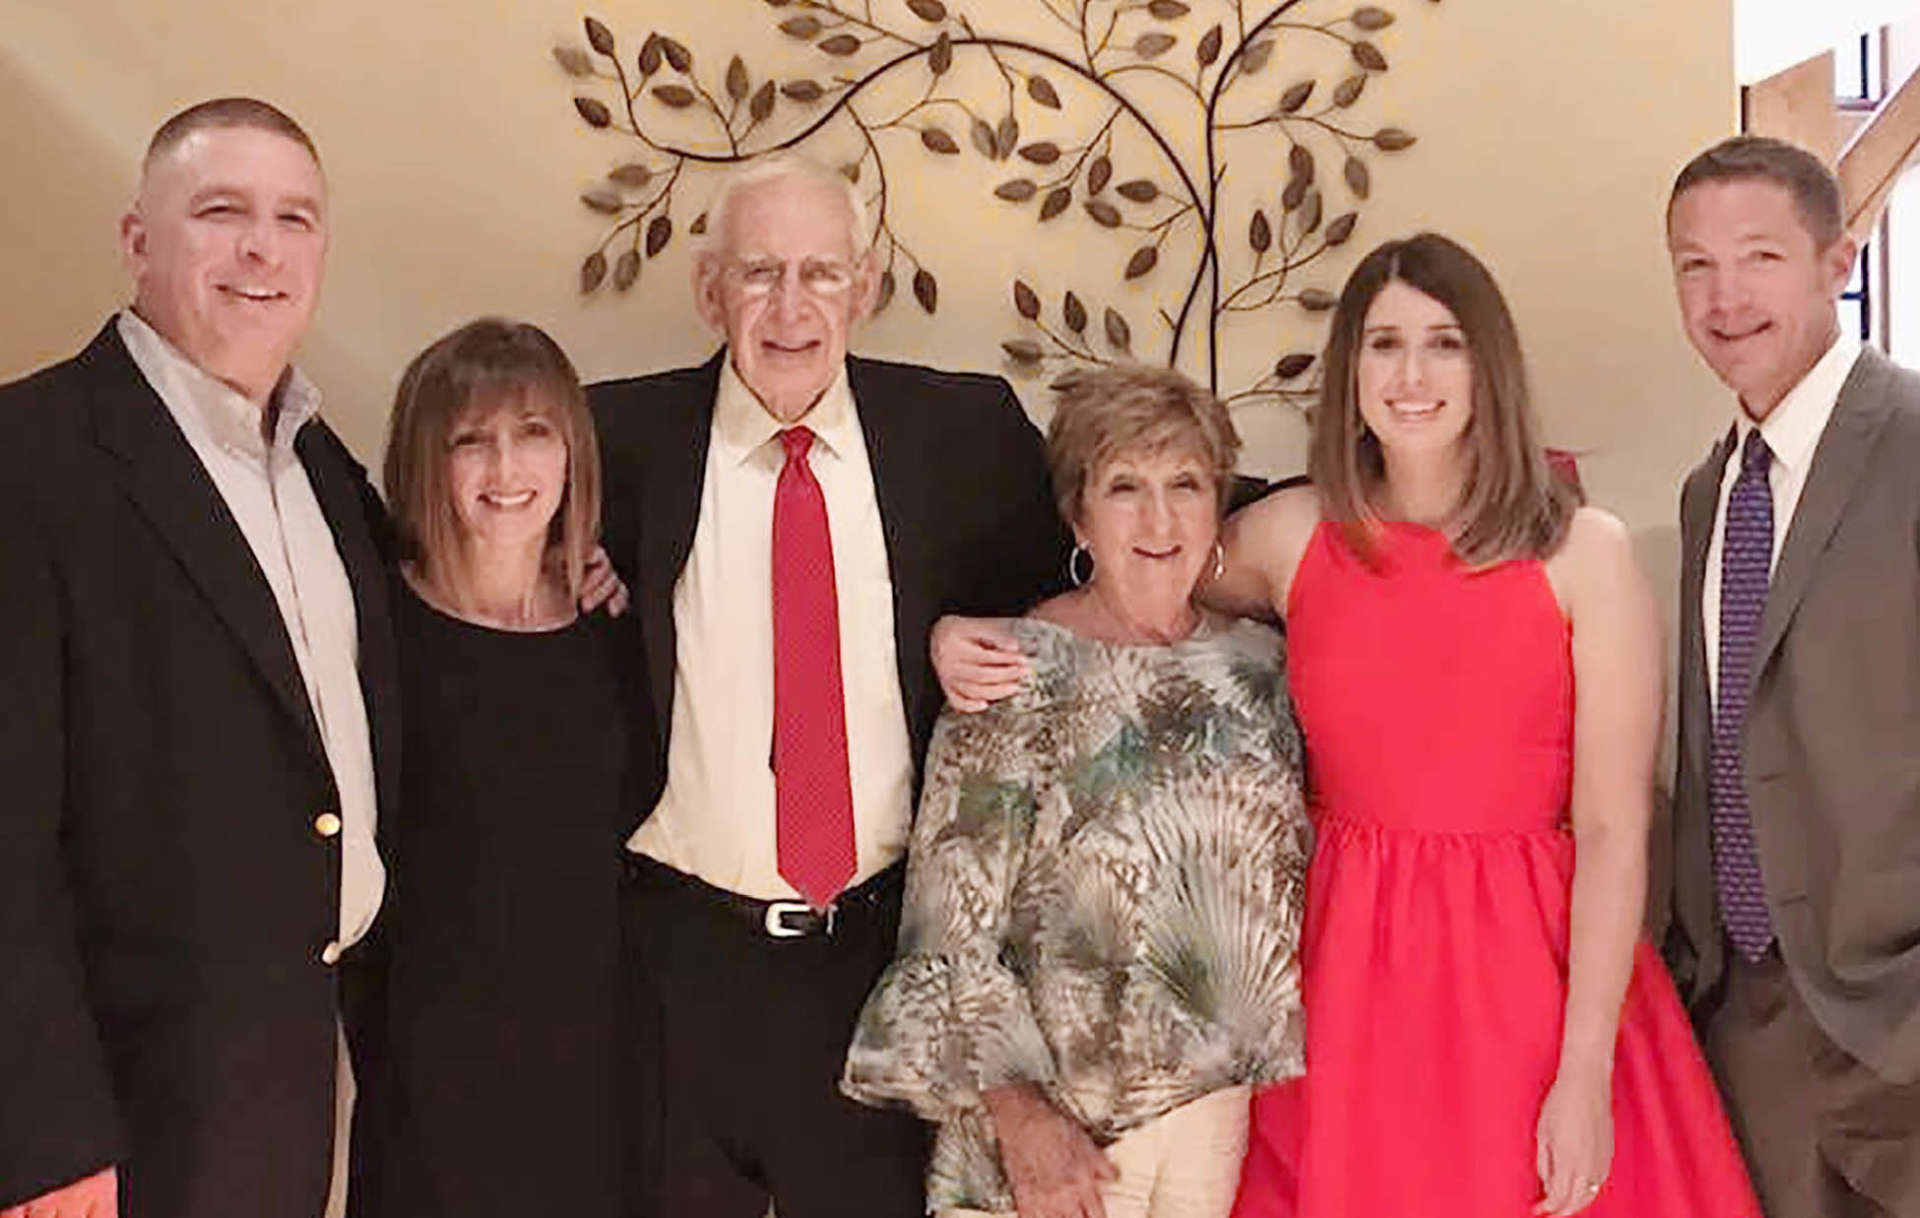 Pictured (l. to r.) are son Chris Fincham, daughter-in-law J.J. Fincham, Ed Fincham, Sophia Fincham, daughter-in-law Amy Fincham, and son Andrew Fincham.